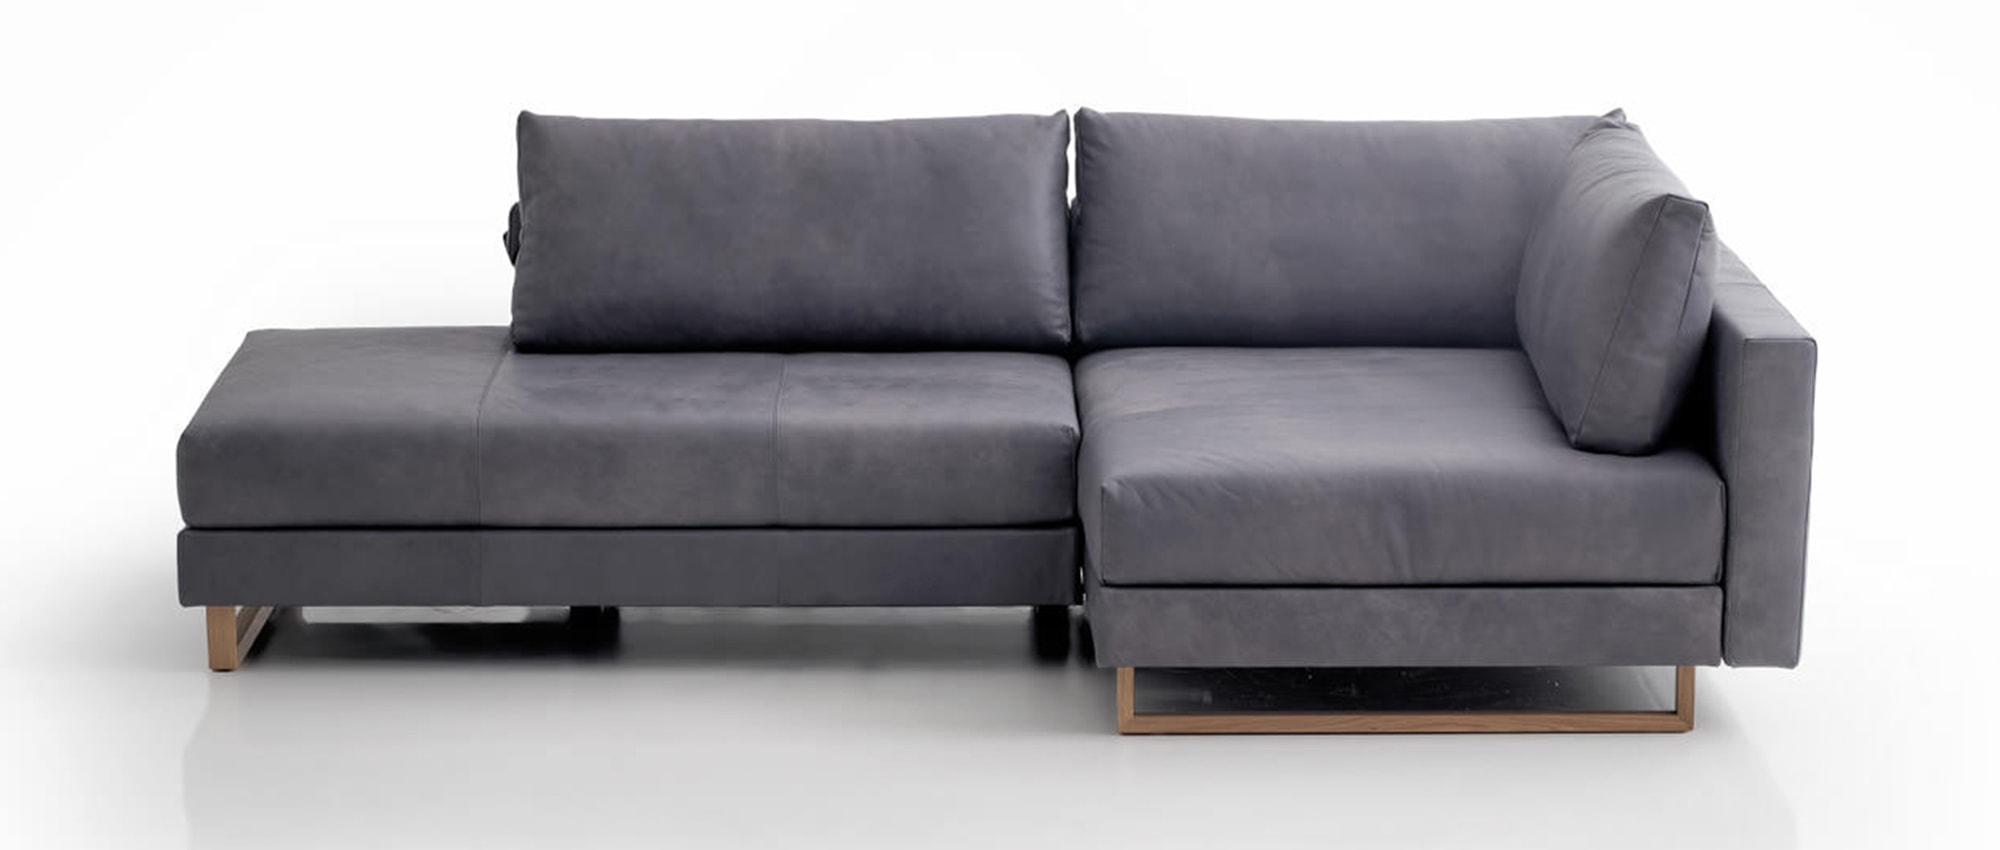 corali eckschlafsofa mit schwenksitz von franz fertig die collection. Black Bedroom Furniture Sets. Home Design Ideas